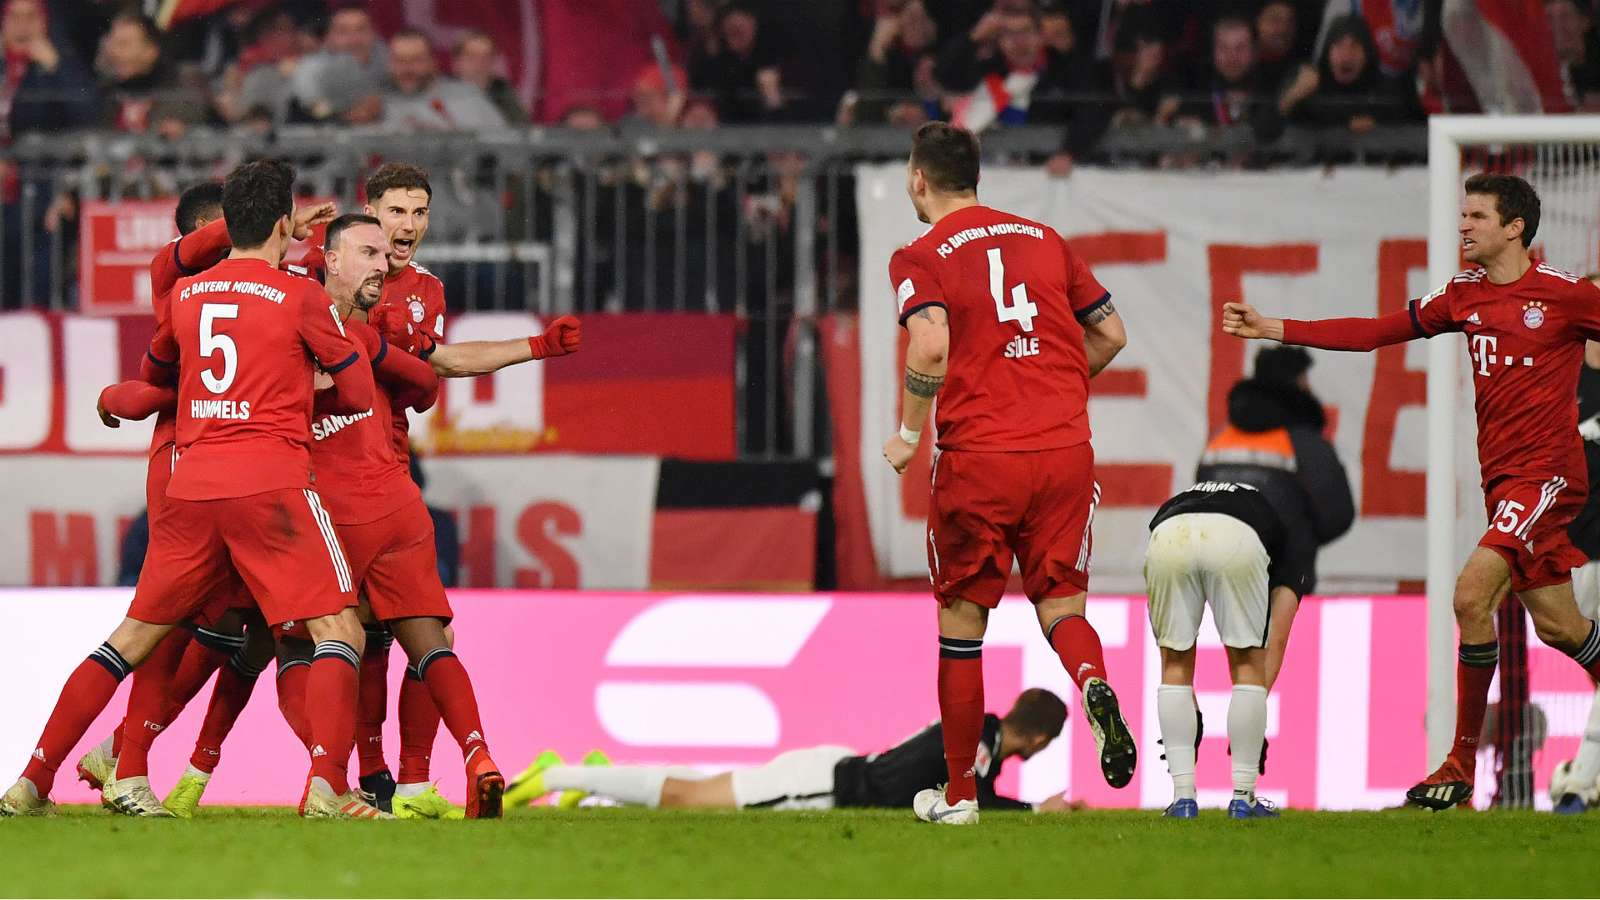 bayern cropped 1pnwv9i1g34de1sh8swtwaezfk - Bayern Munich vs RB Leipzig 1-0: Bundesliga Highlights [Video]